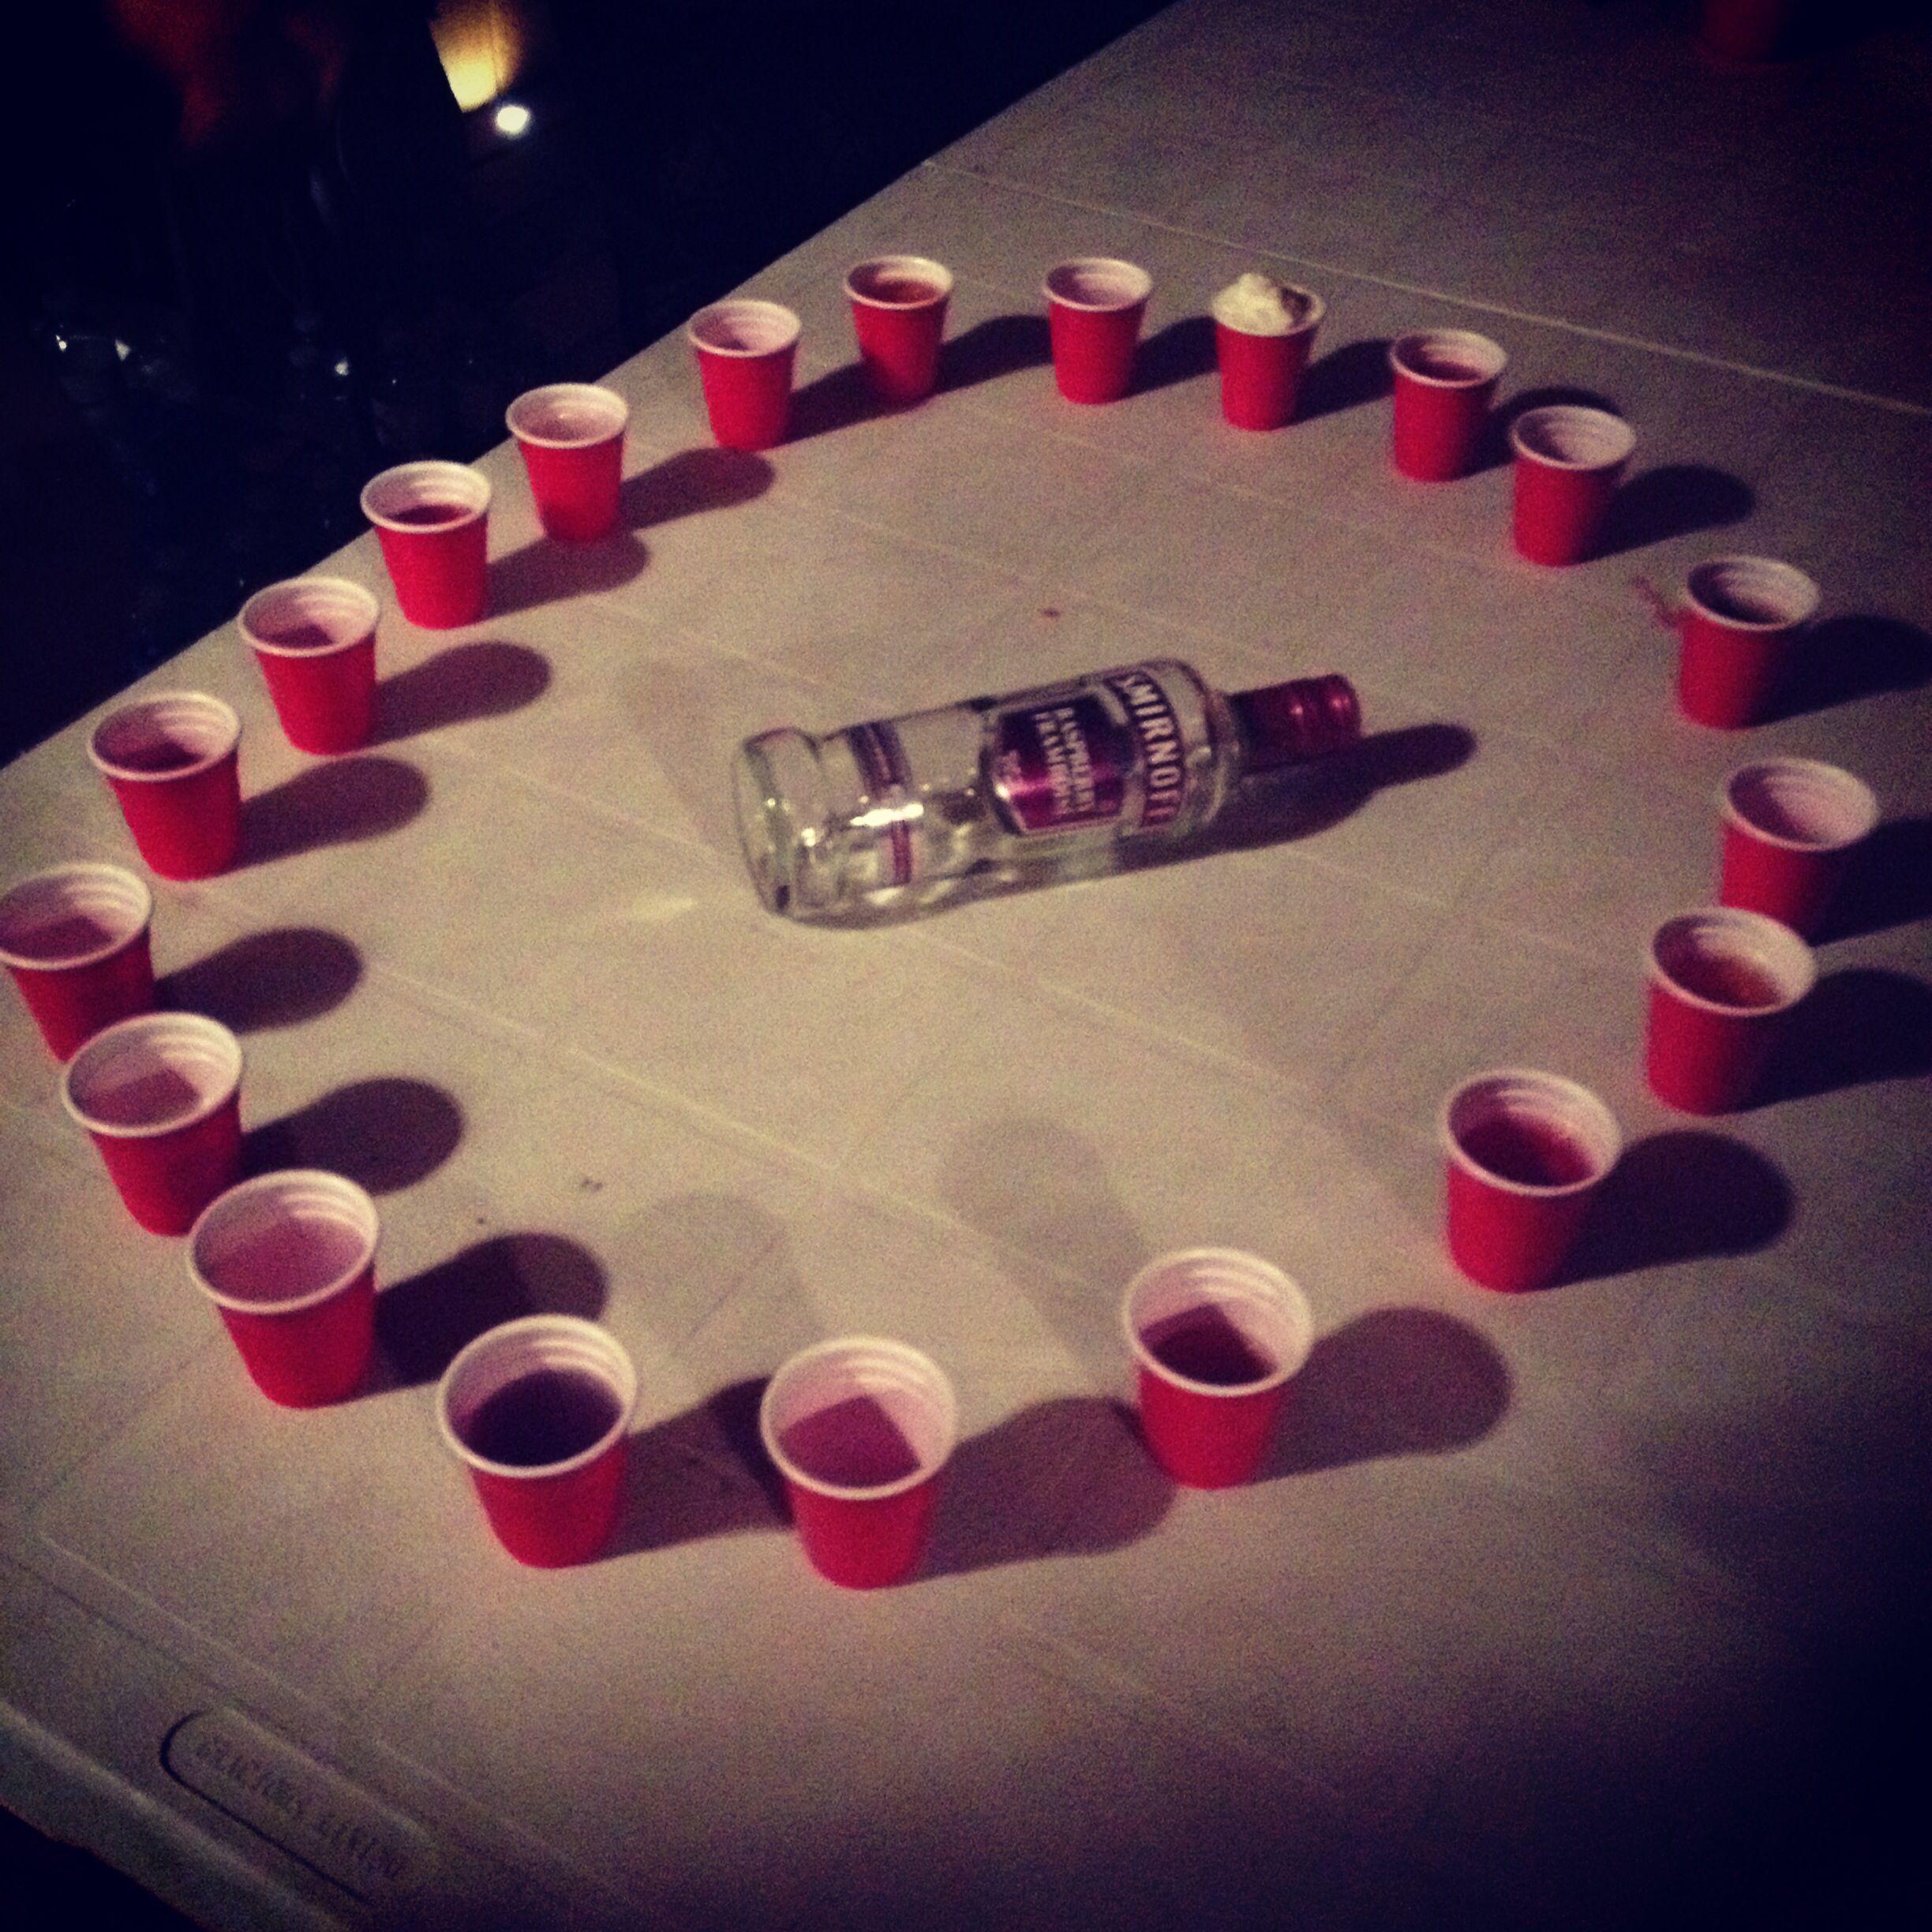 Shot Roulette Backyard Bachelorette Party Games Fun Mix Alcohol Juice